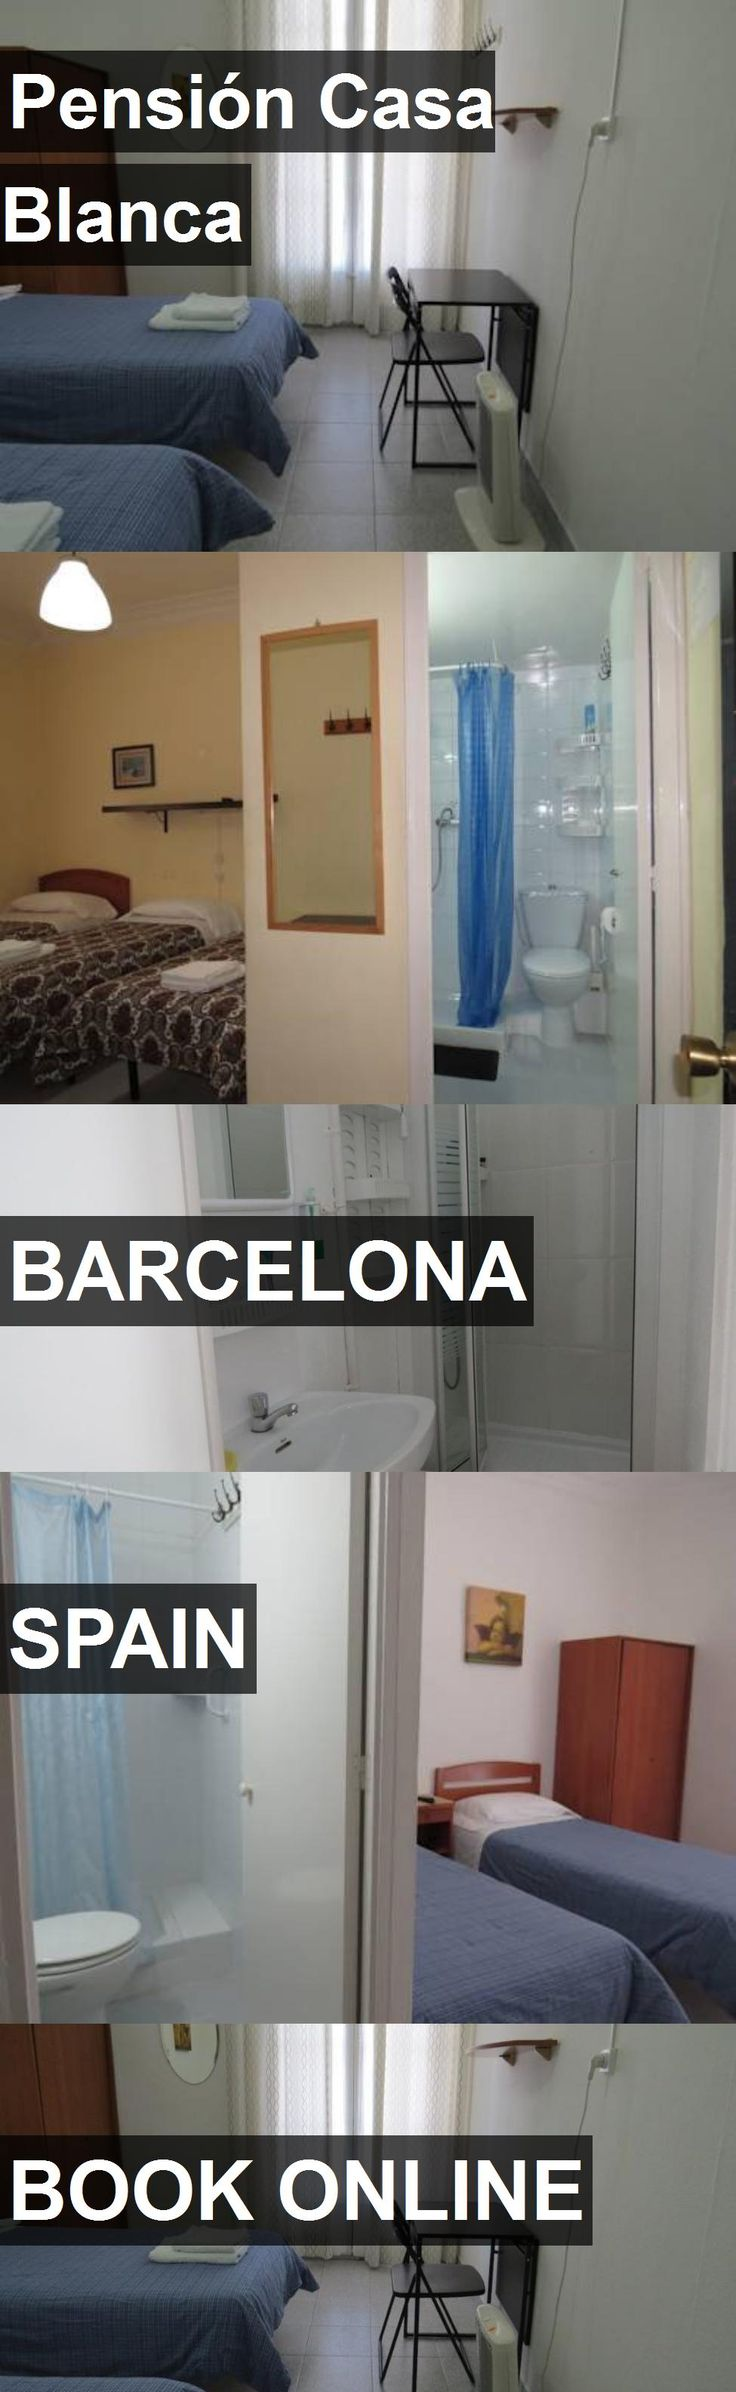 Hotel Pensión Casa Blanca in Barcelona, Spain. For more information, photos, reviews and best prices please follow the link. #Spain #Barcelona #hotel #travel #vacation